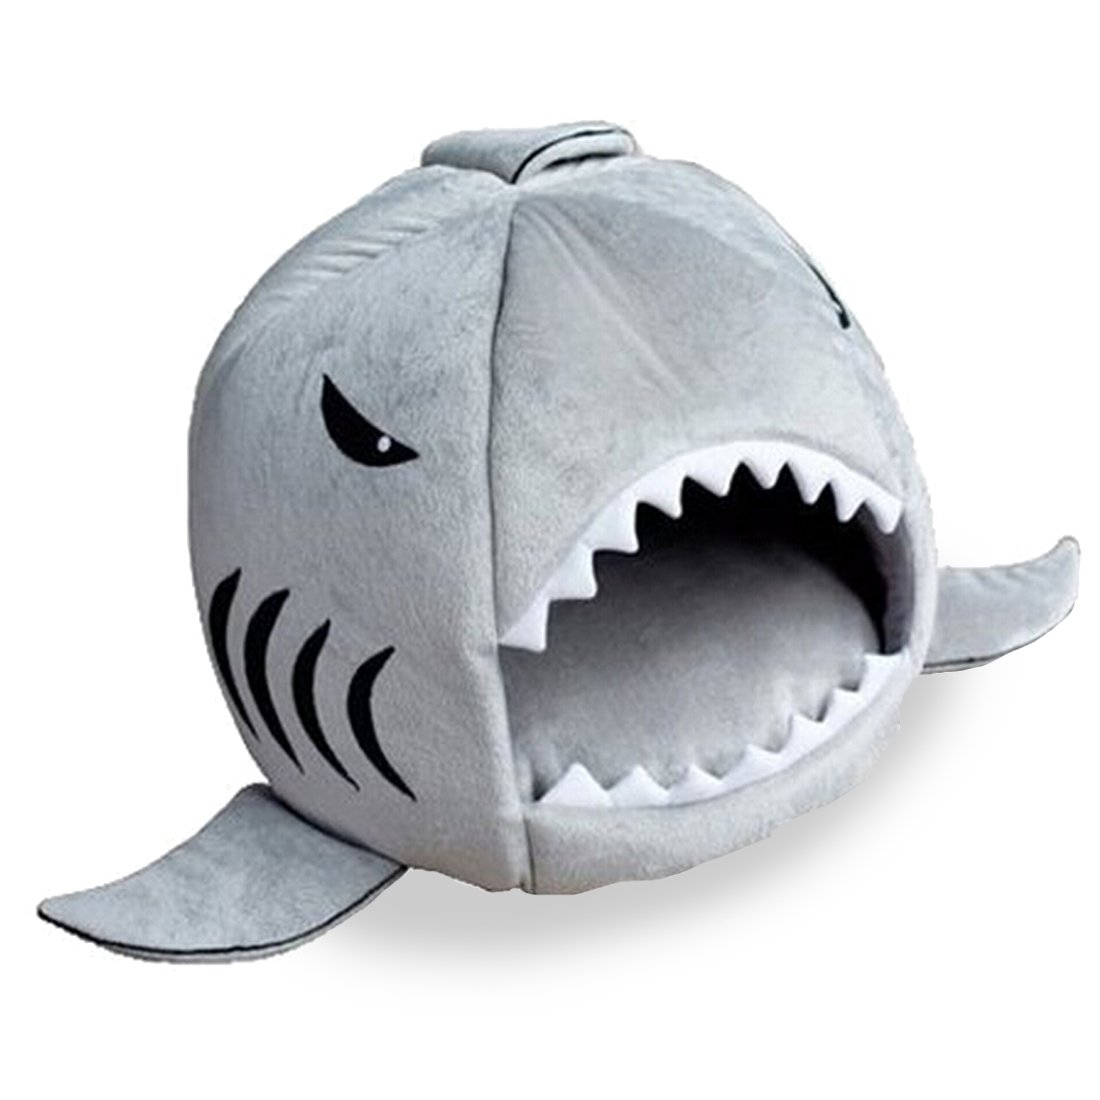 Shark Bed for Small Cat Dog Cave Bed Removable Cushion,waterproof Bottom Most Lovely Pet House Gift for Pet S, Blue